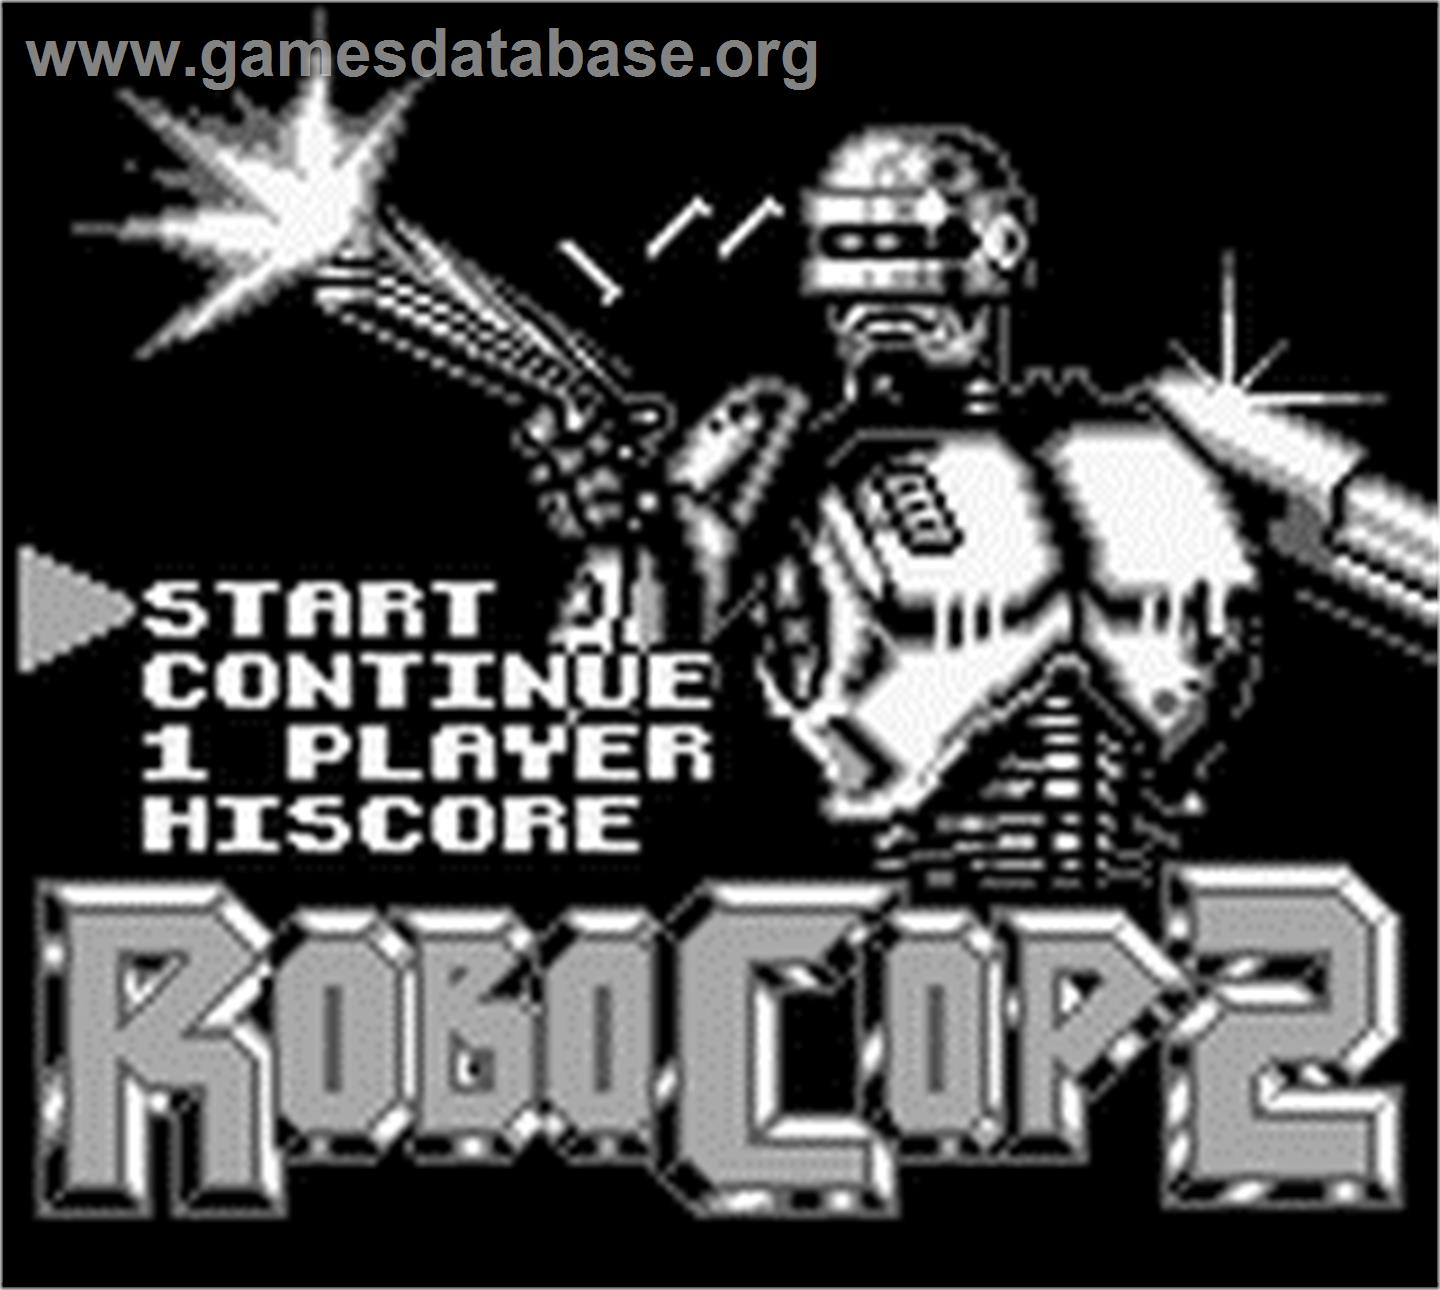 Robocop 2 - Nintendo Game Boy - Artwork - Title Screen